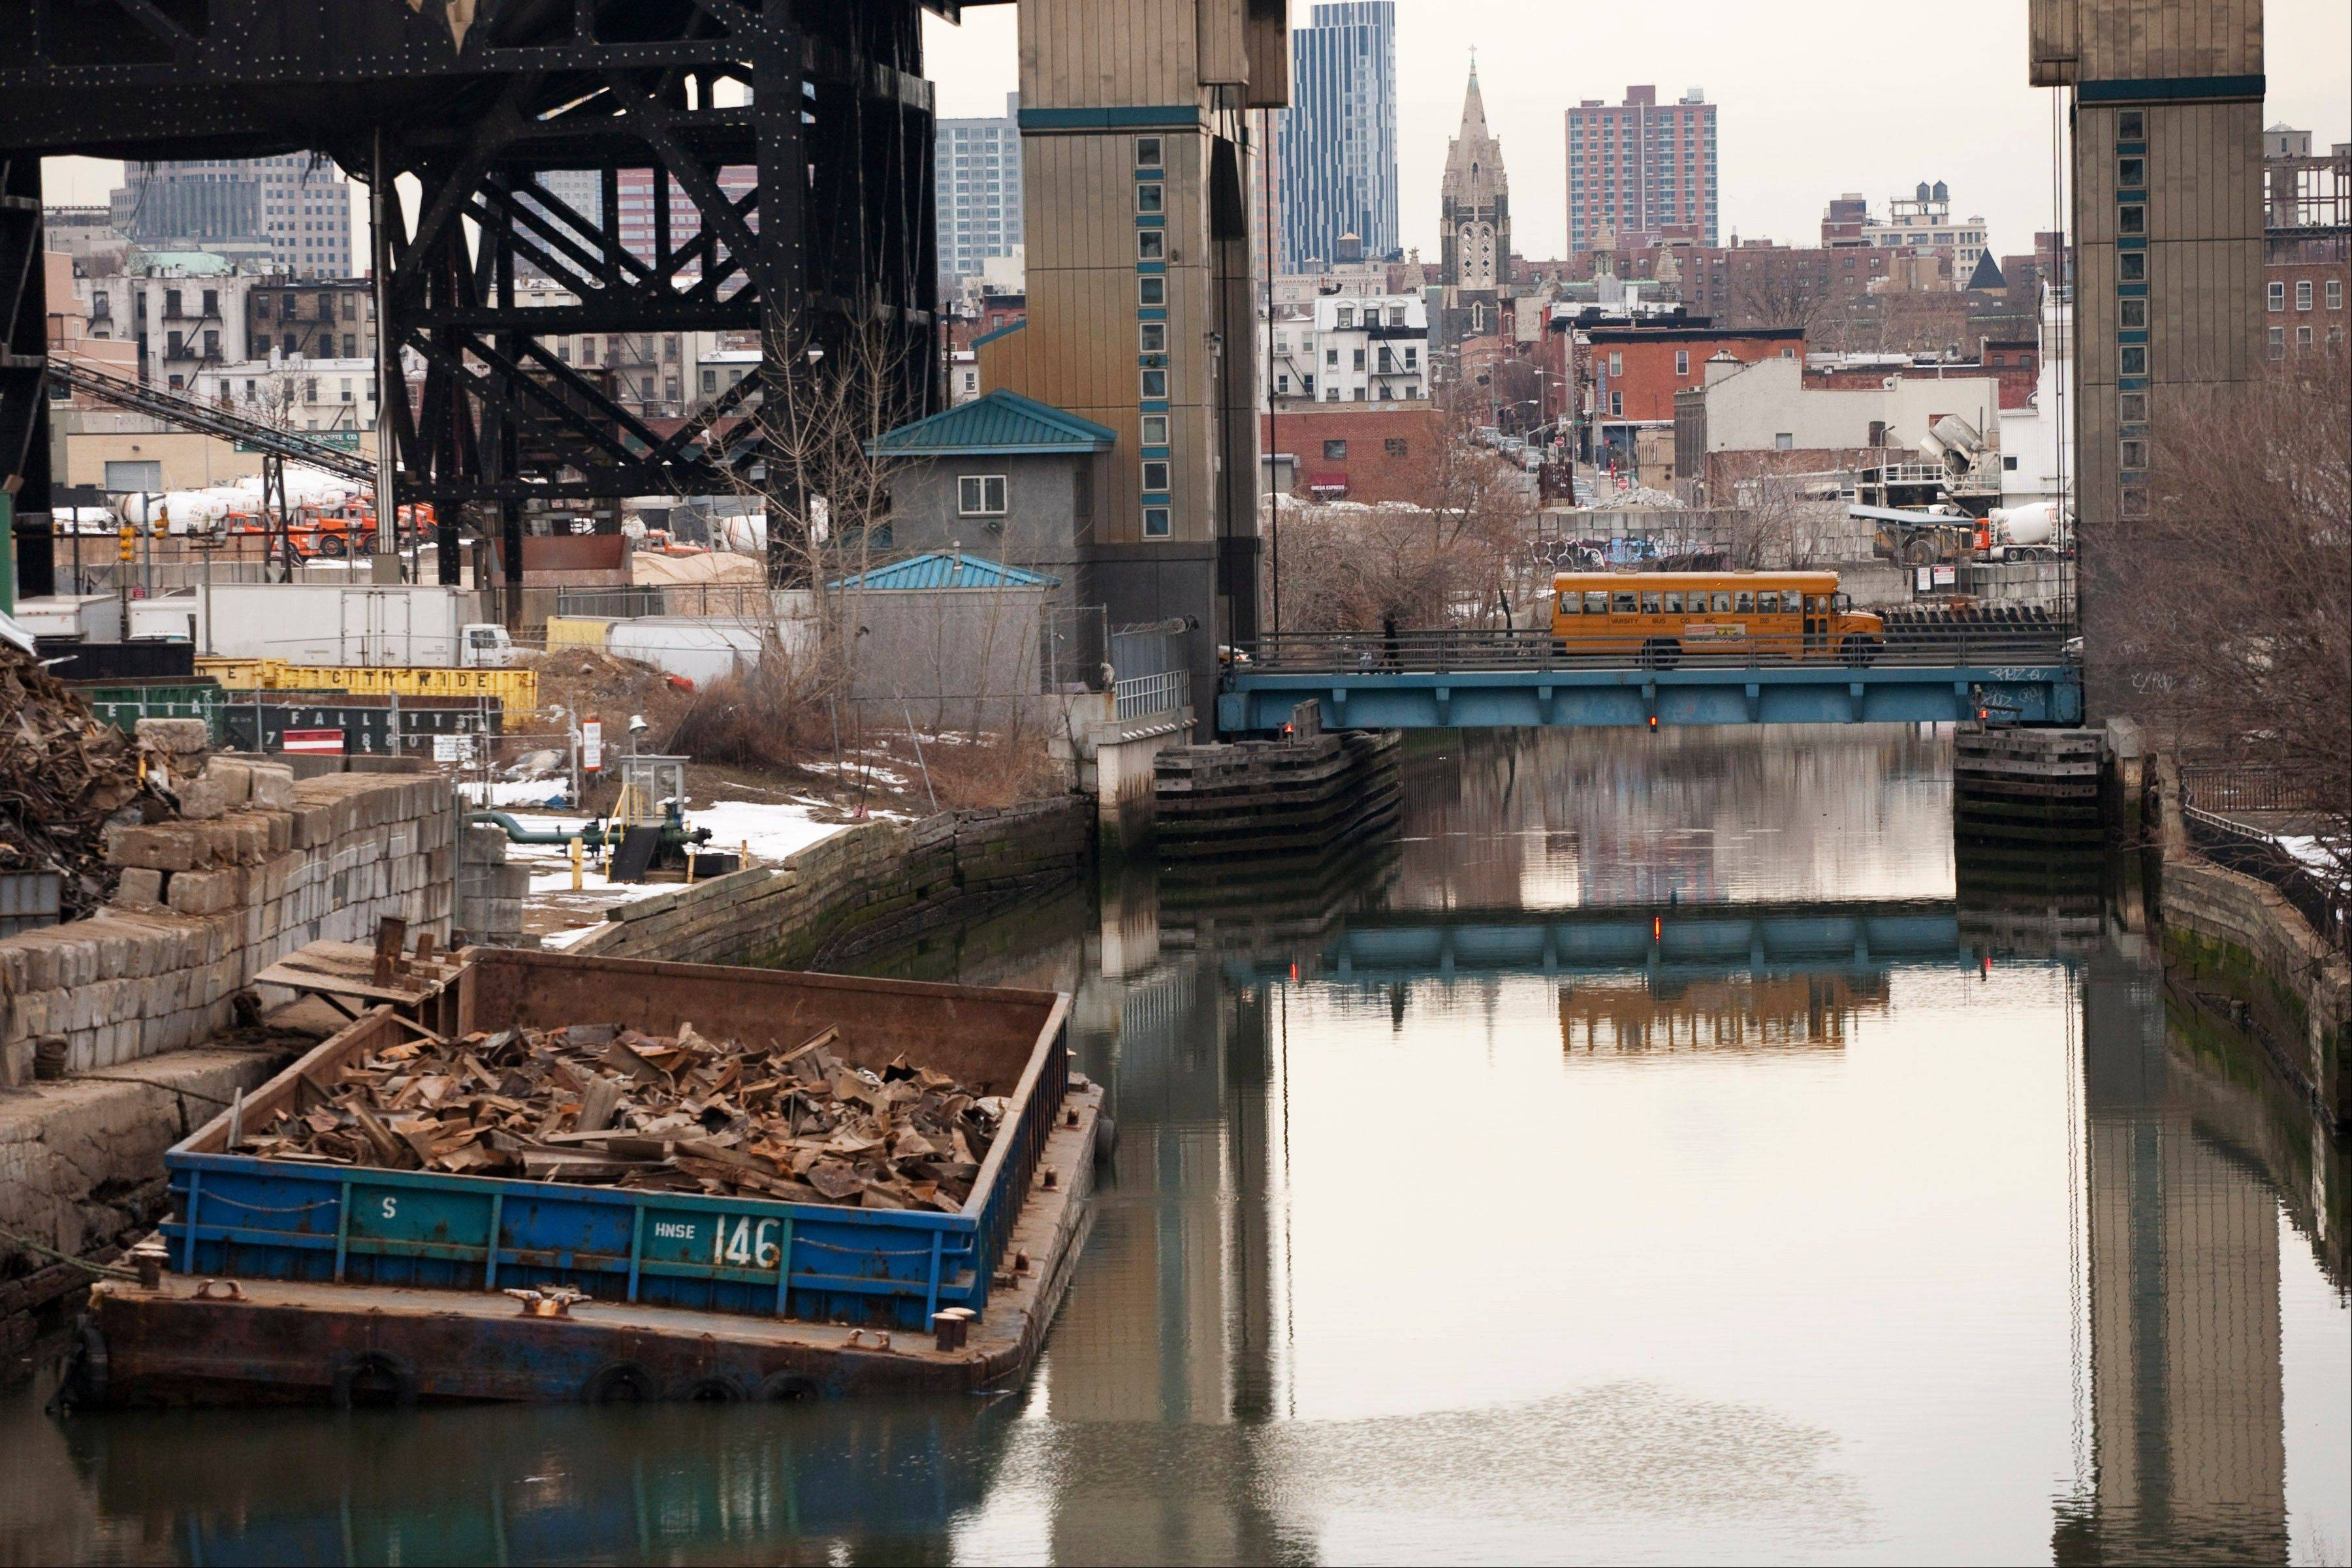 This file photo of March 2, 2010 shows the Gowanus Canal, which was added to the Superfund National Priorities List in 2010 for being heavily contaminated with PCBs, heavy metals, volatile organics and coal tar wastes. New York, New Jersey and EPA officials say toxic sites are OK after Superstorm Sandy, but The Associated Press has found that few actual tests have been done.